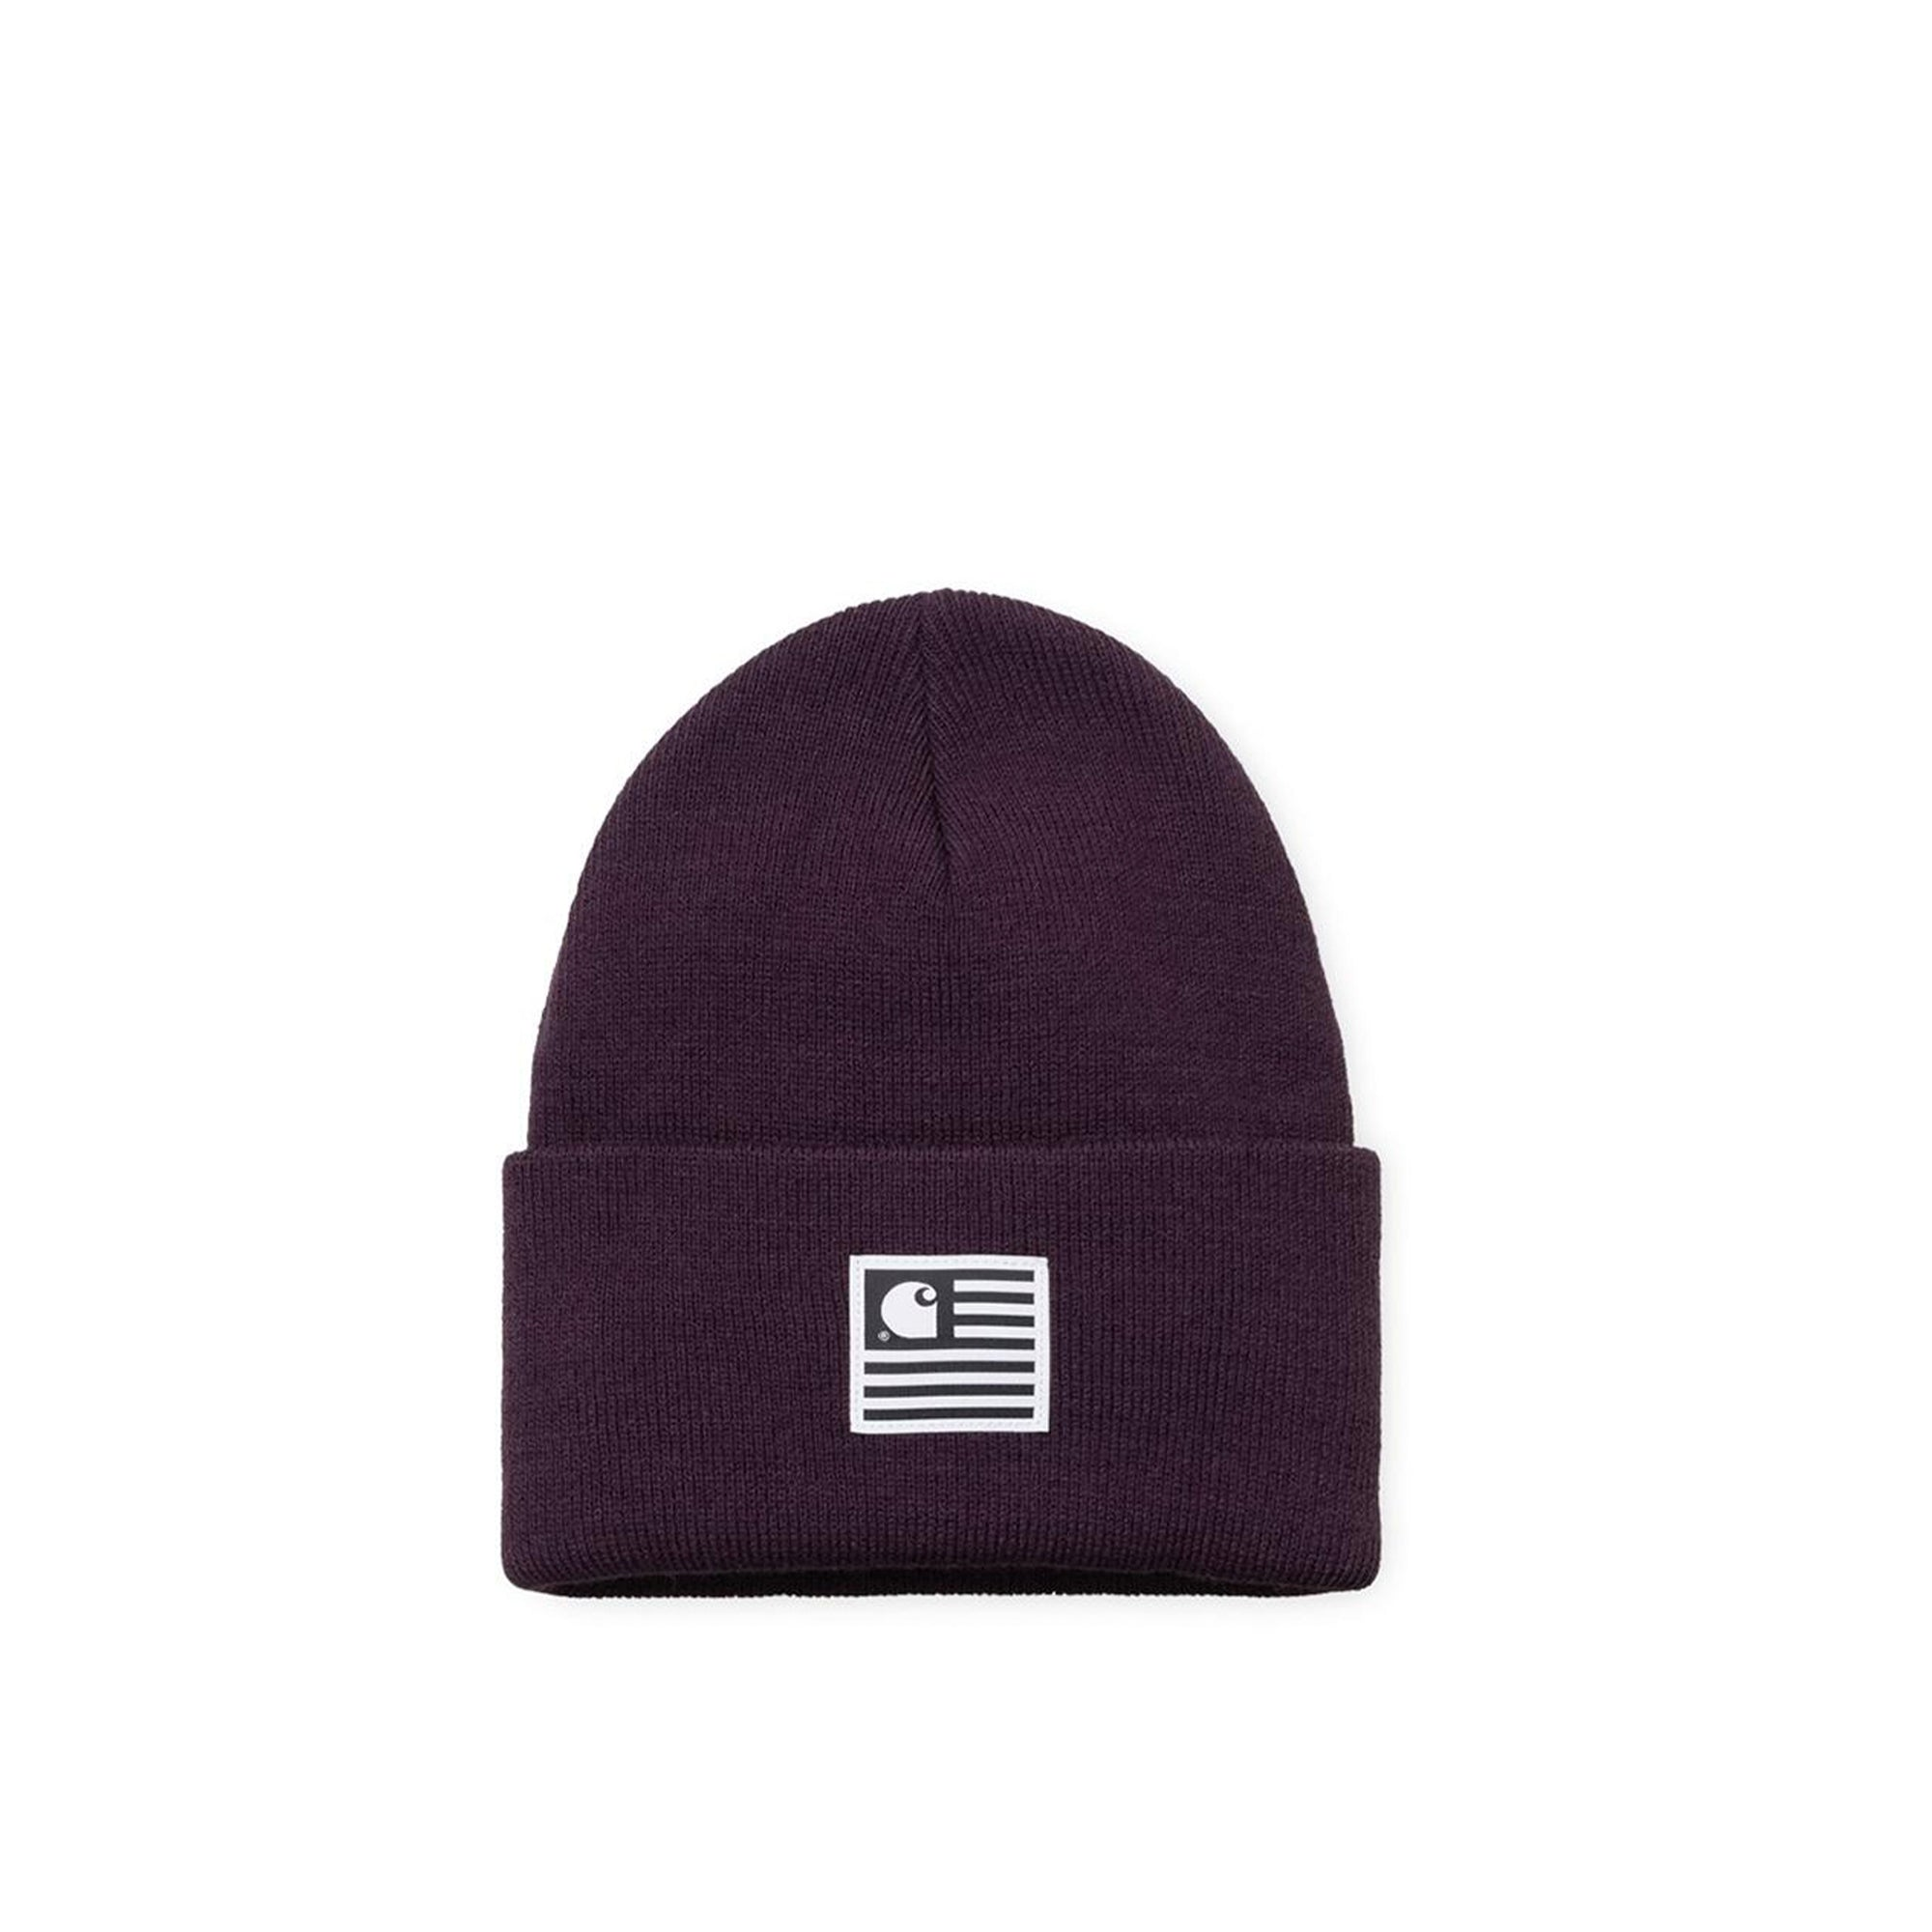 Carhartt WIP State Beanie: Boysenberry - The Union Project